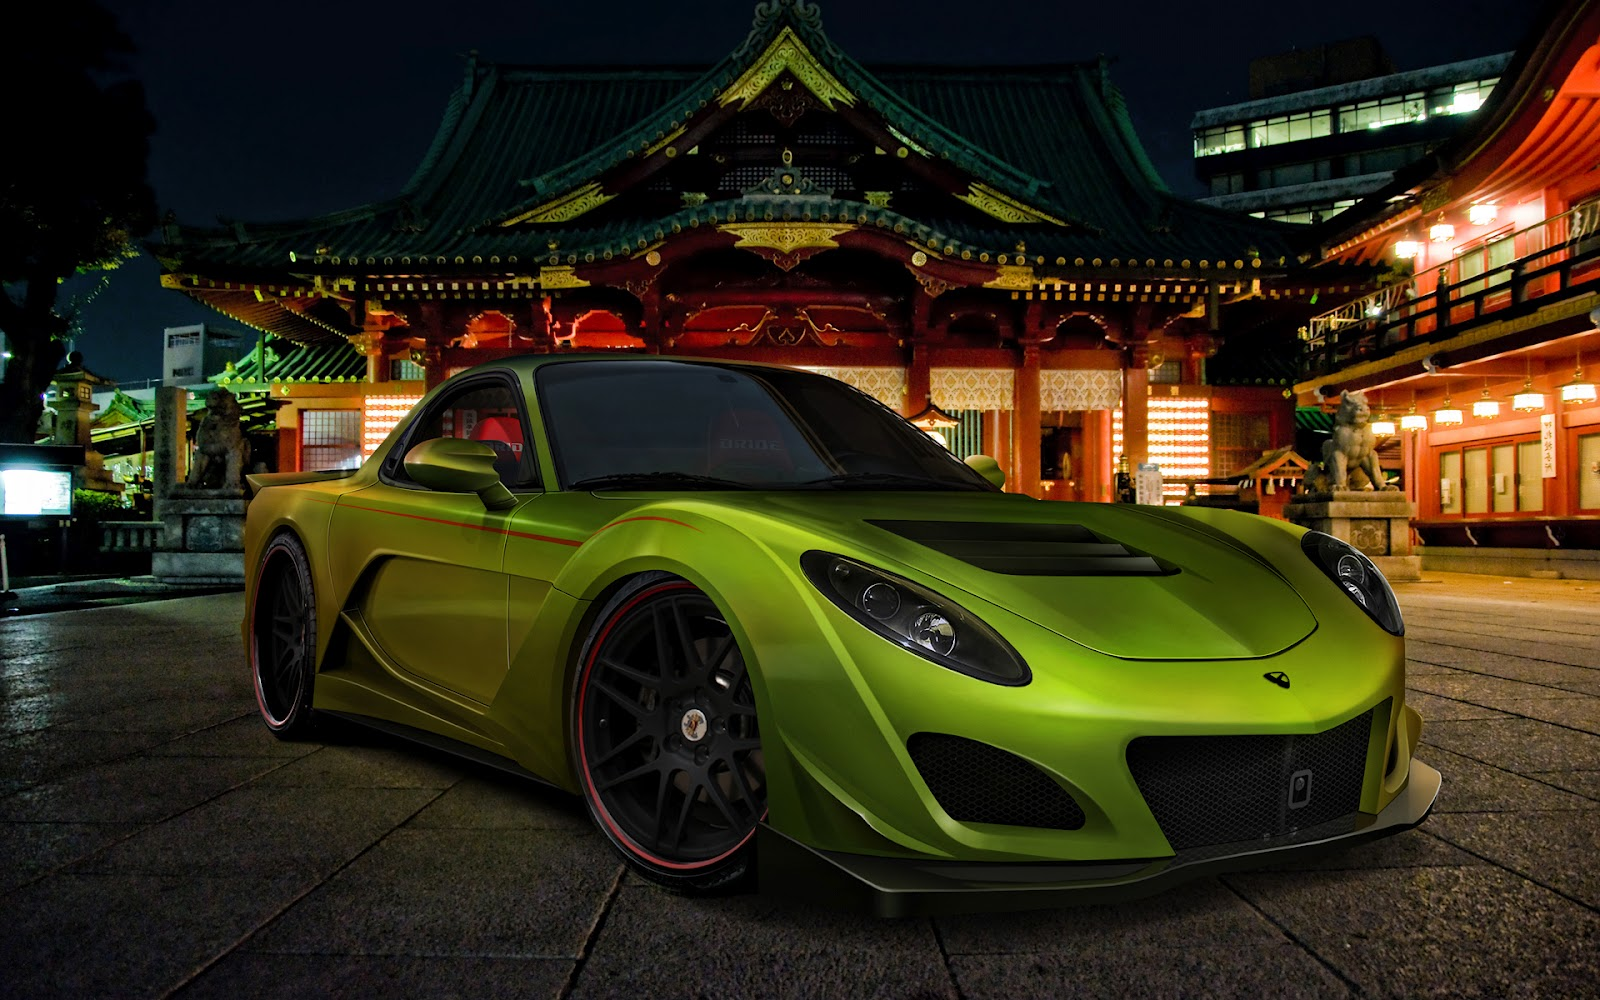 Cars Wallpapers: HD 2012 Wallpapers: HD Wonderful Cars Wallpapers Set 3